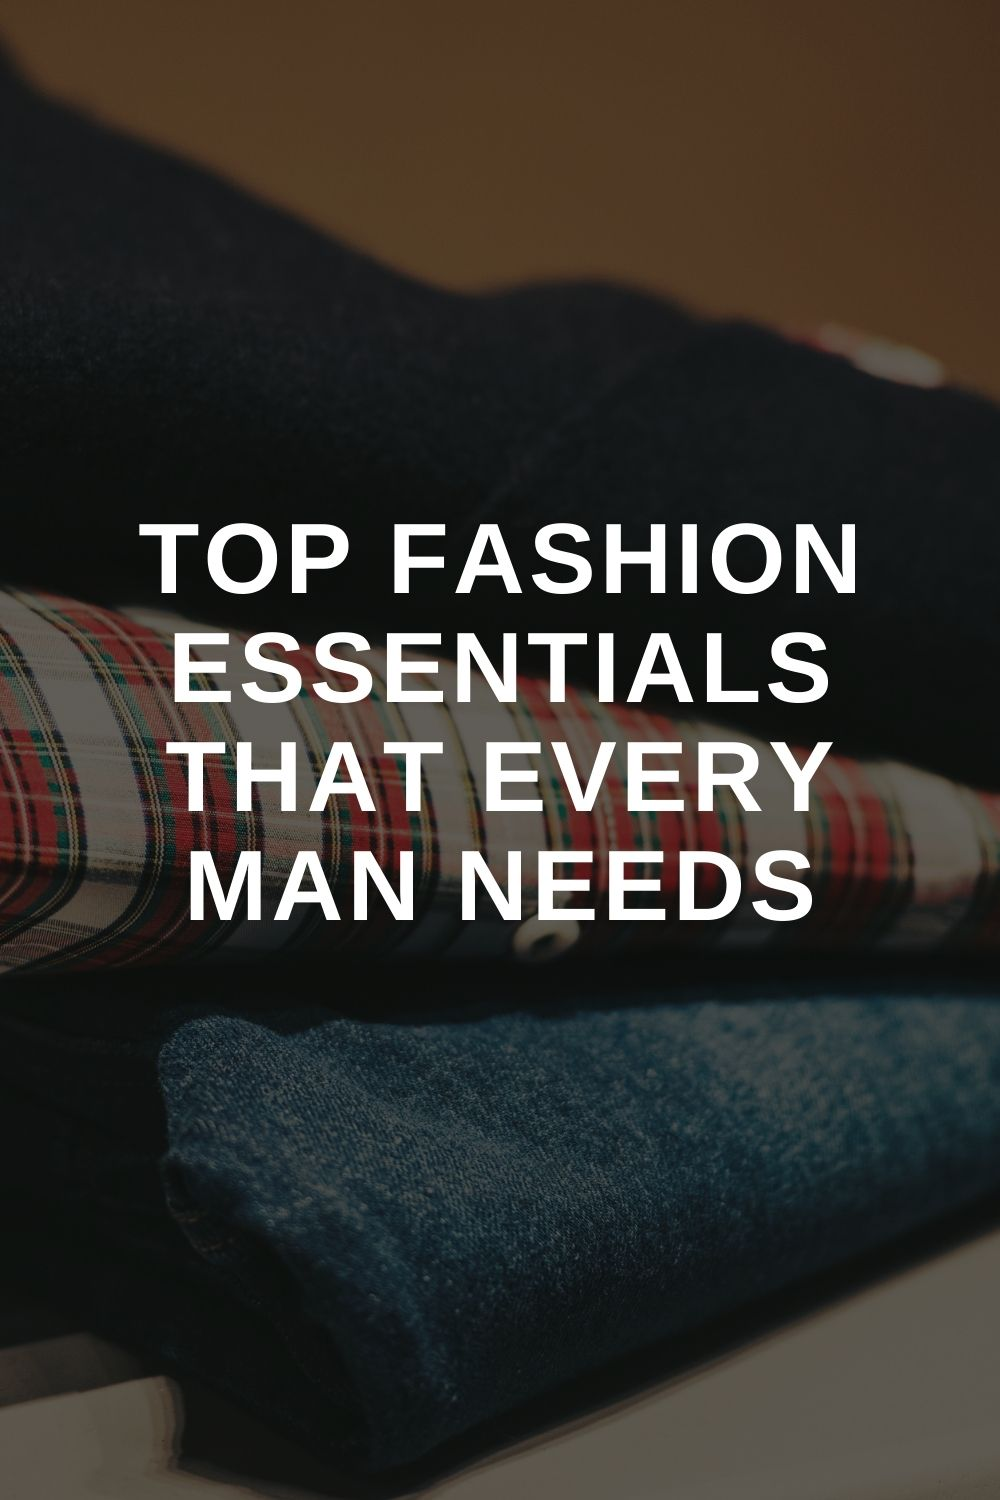 Top Fashion Essentials That Every Man Needs